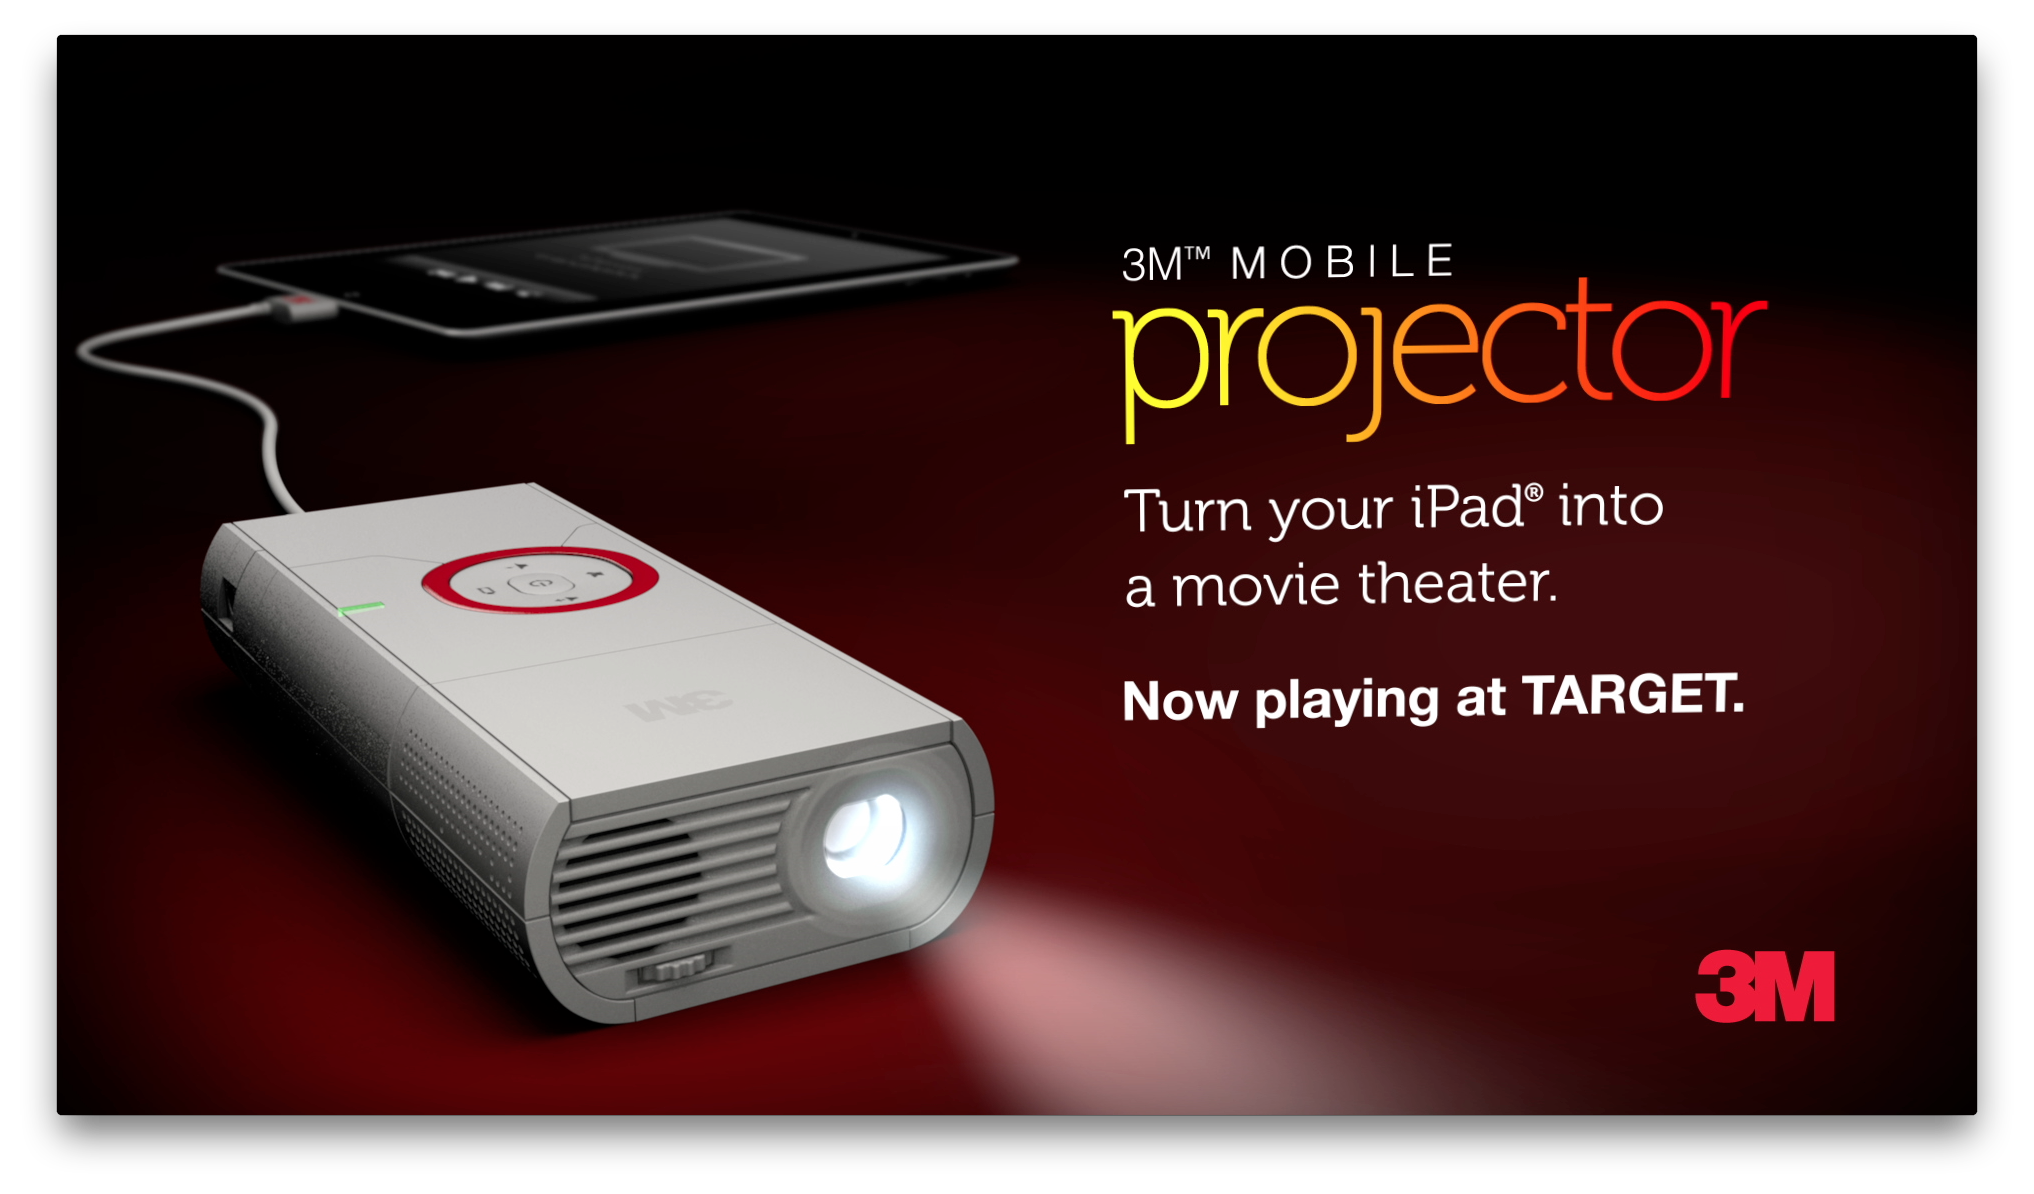 Family Fun with a 3M Mobile Projector {And a $150 Target GiftCard Giveaway!!!}